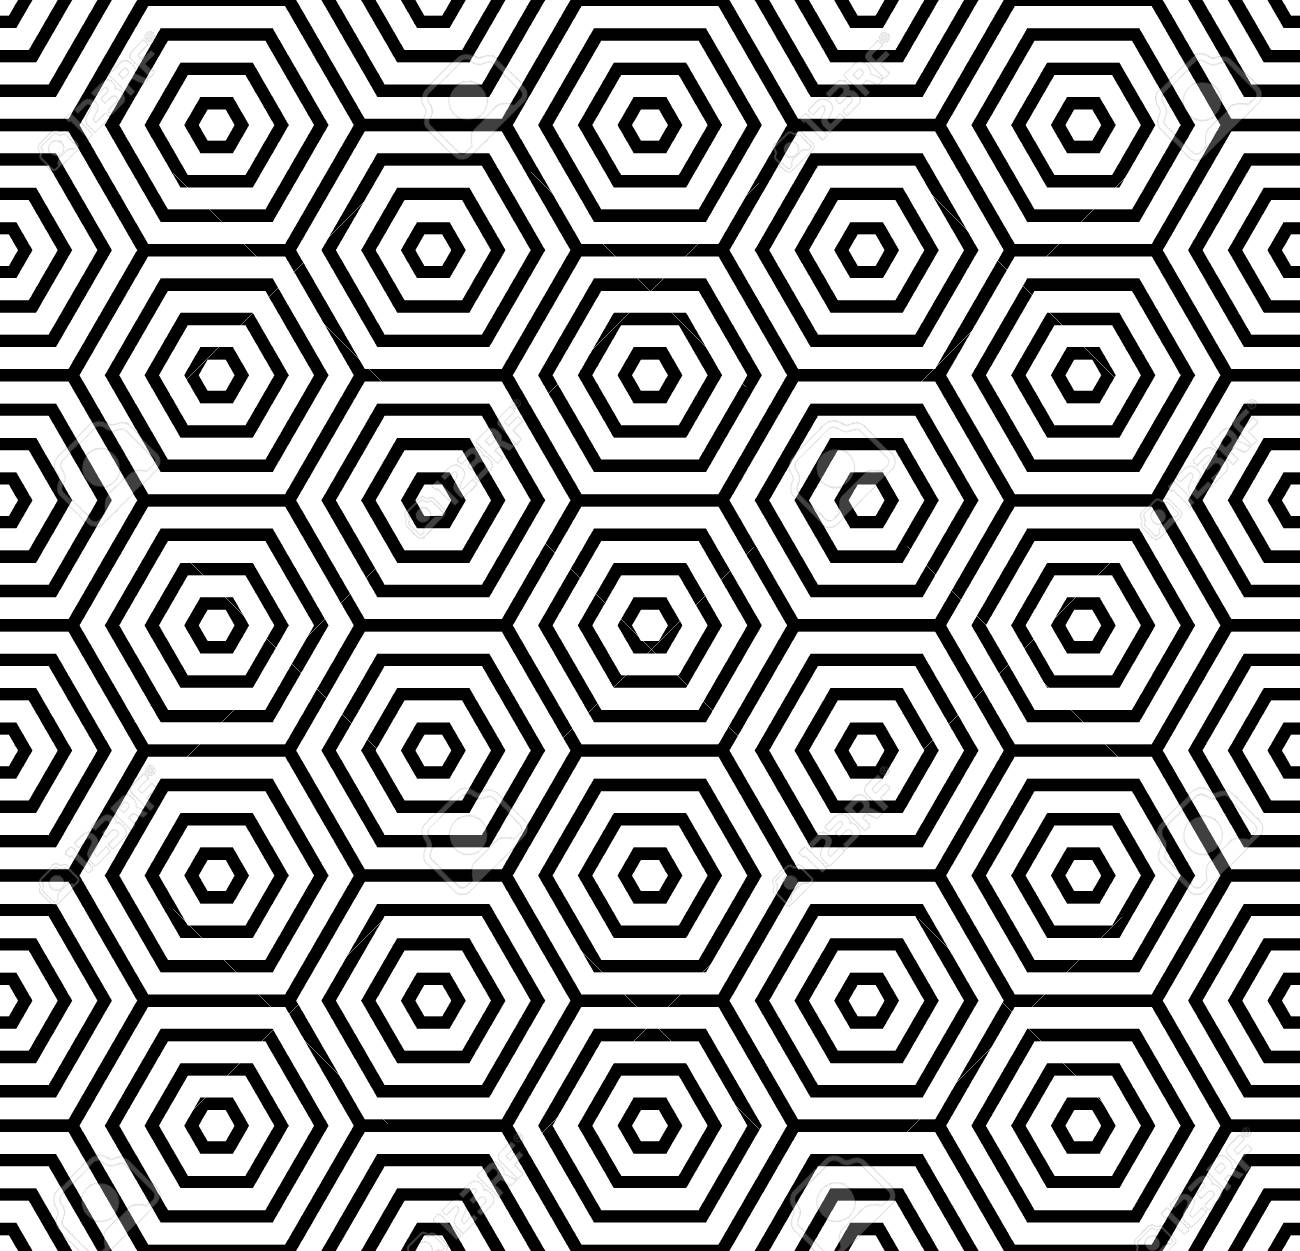 black and white hexagons and striped lines seamless pattern